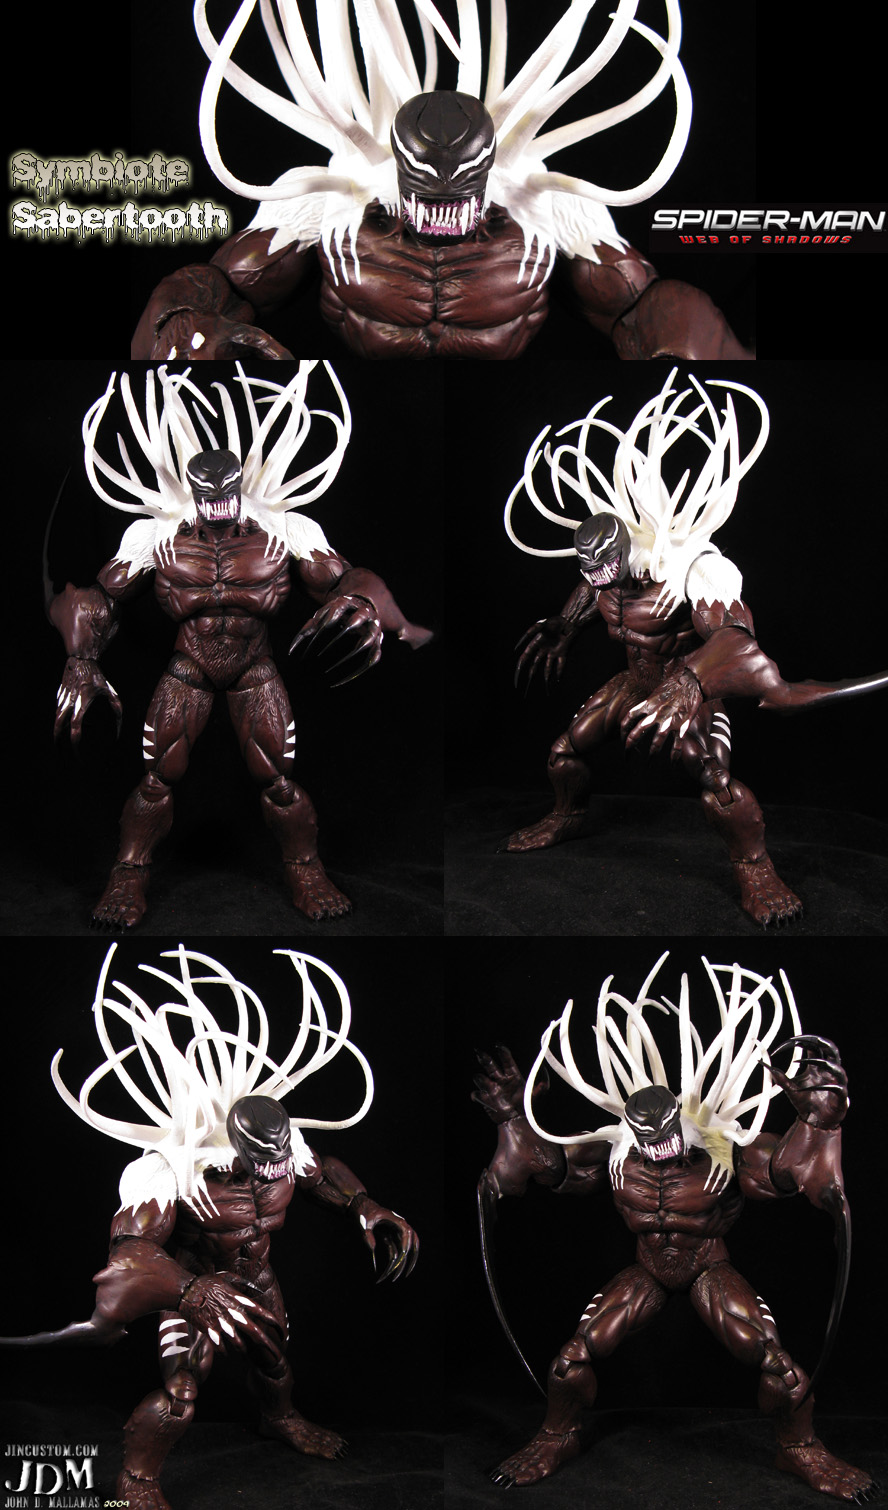 Symbiote Sabertooth